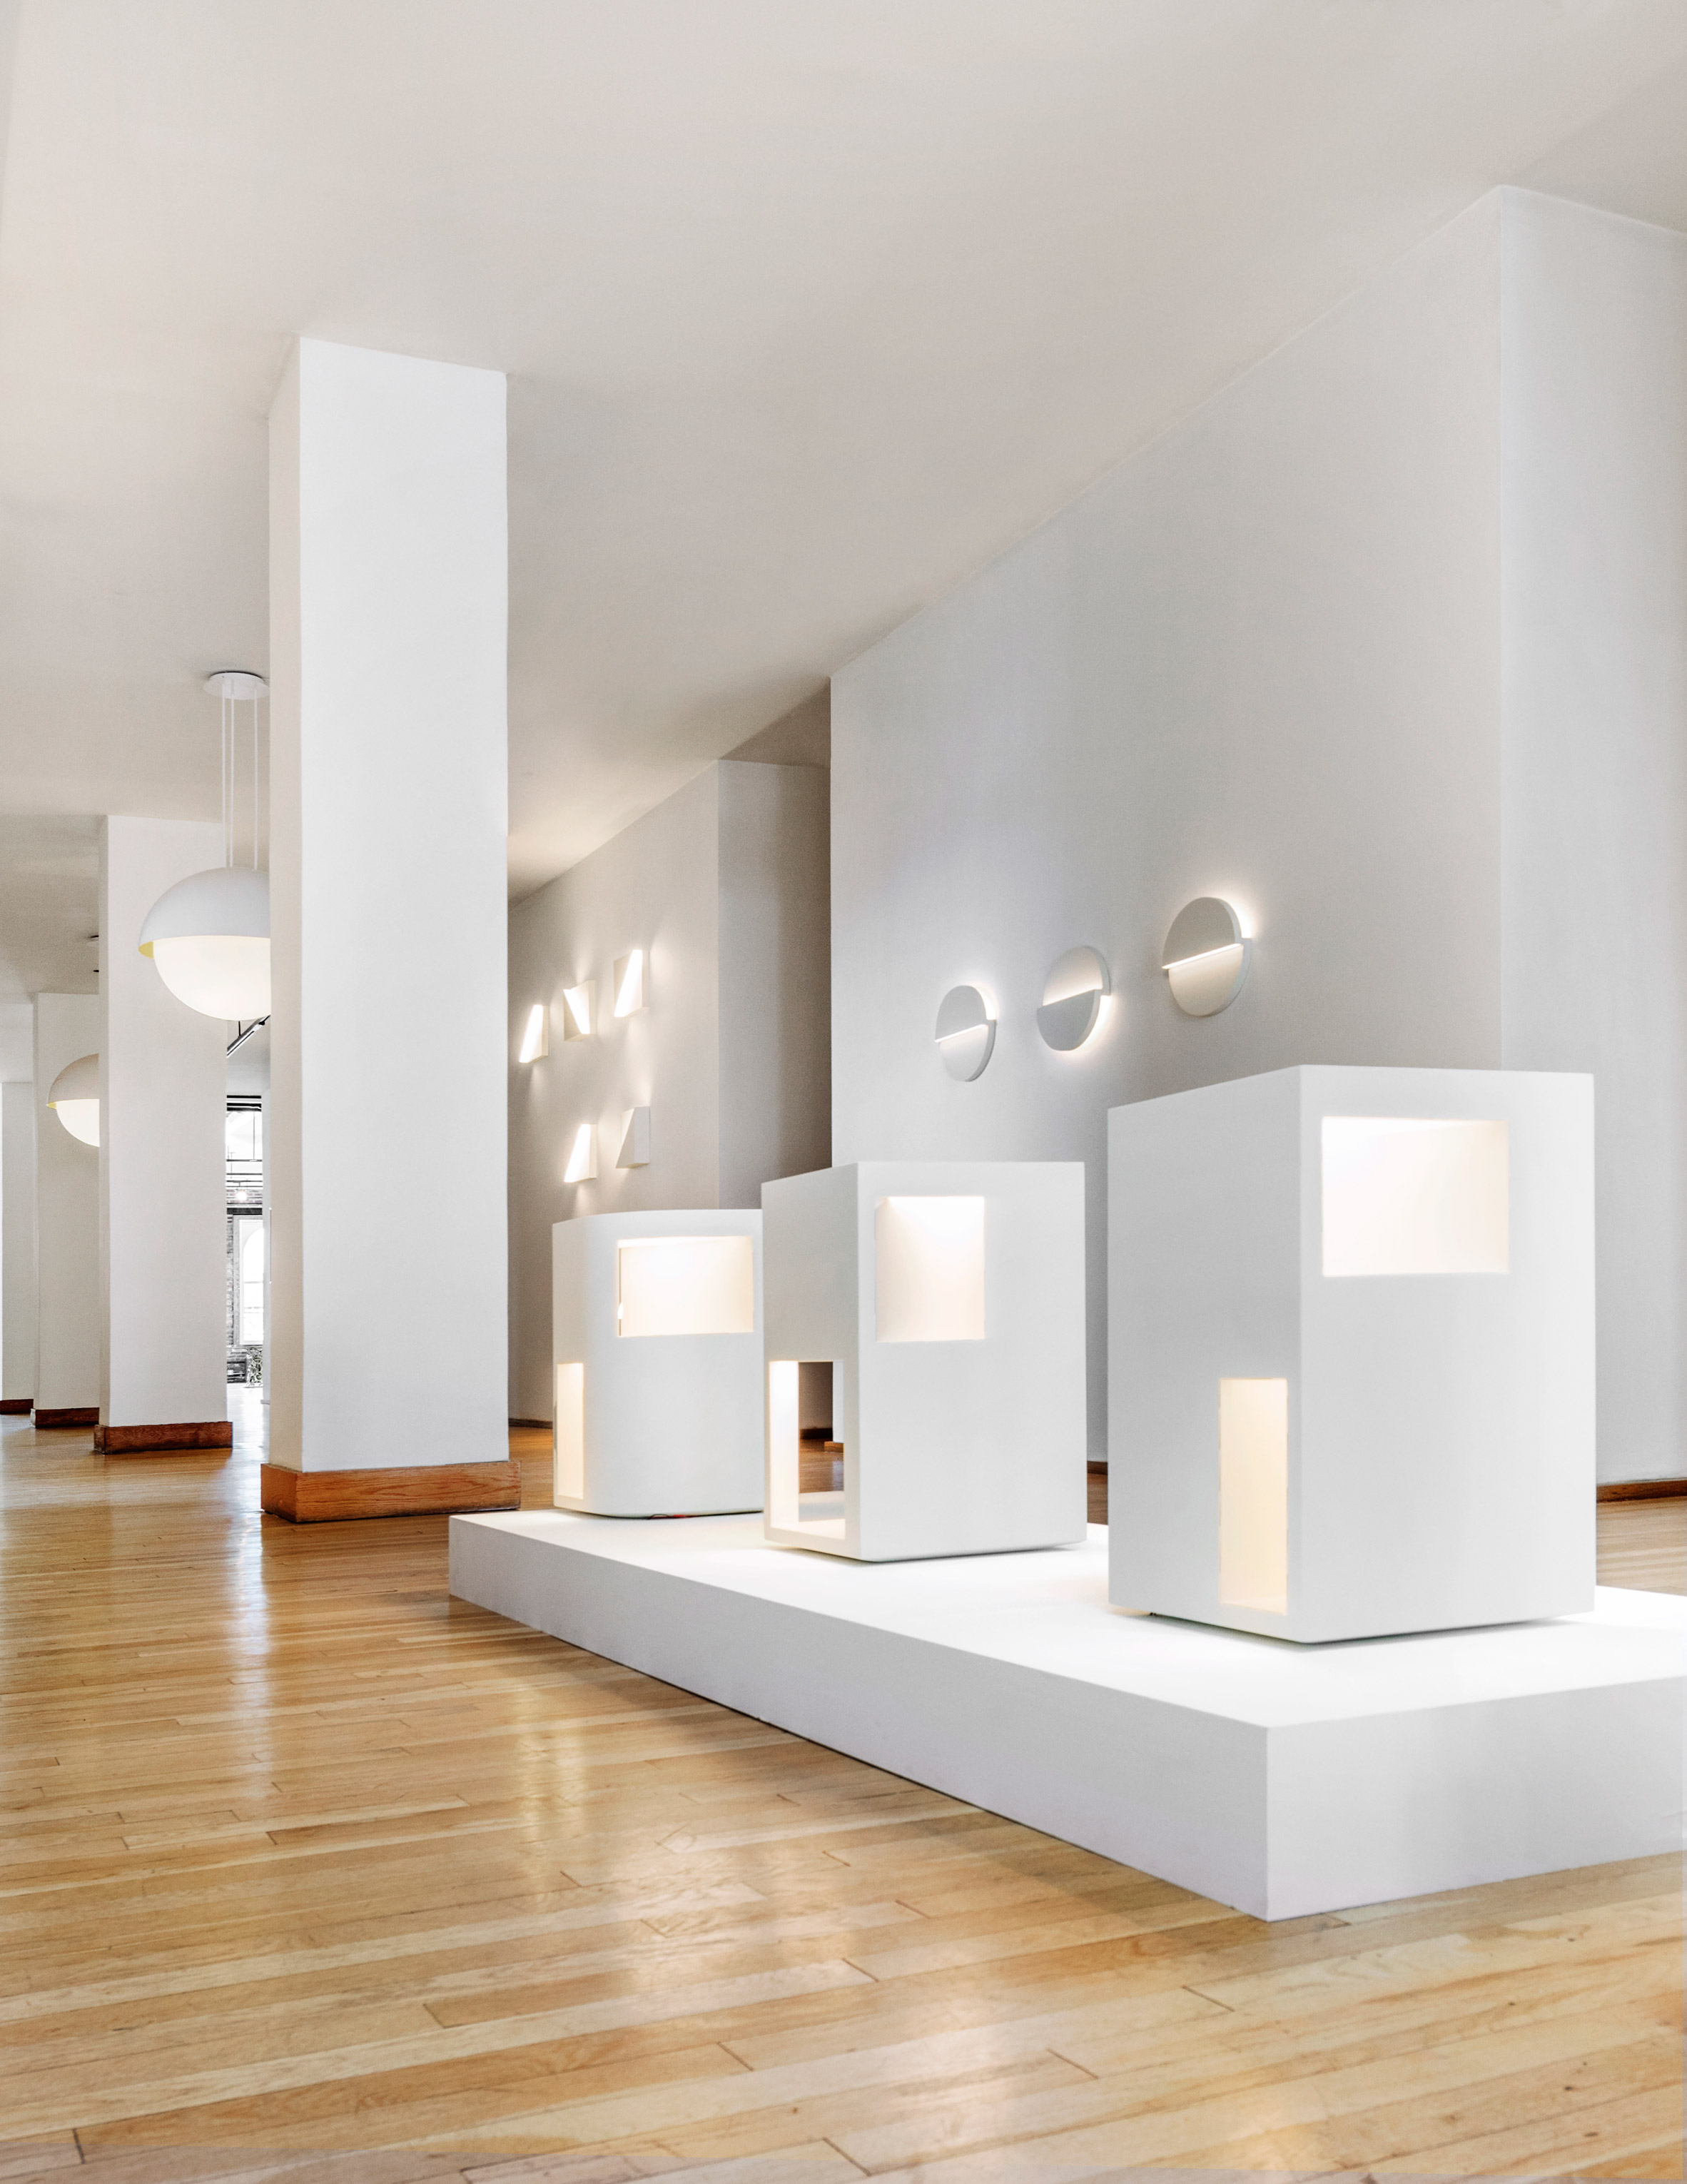 Fall in Love with Richard Meier's Minimal Lighting Collection 8 lighting collection Fall in Love with Richard Meier's Minimal Lighting Collection Fall in Love with Richard Meiers Minimal Lighting Collection 8